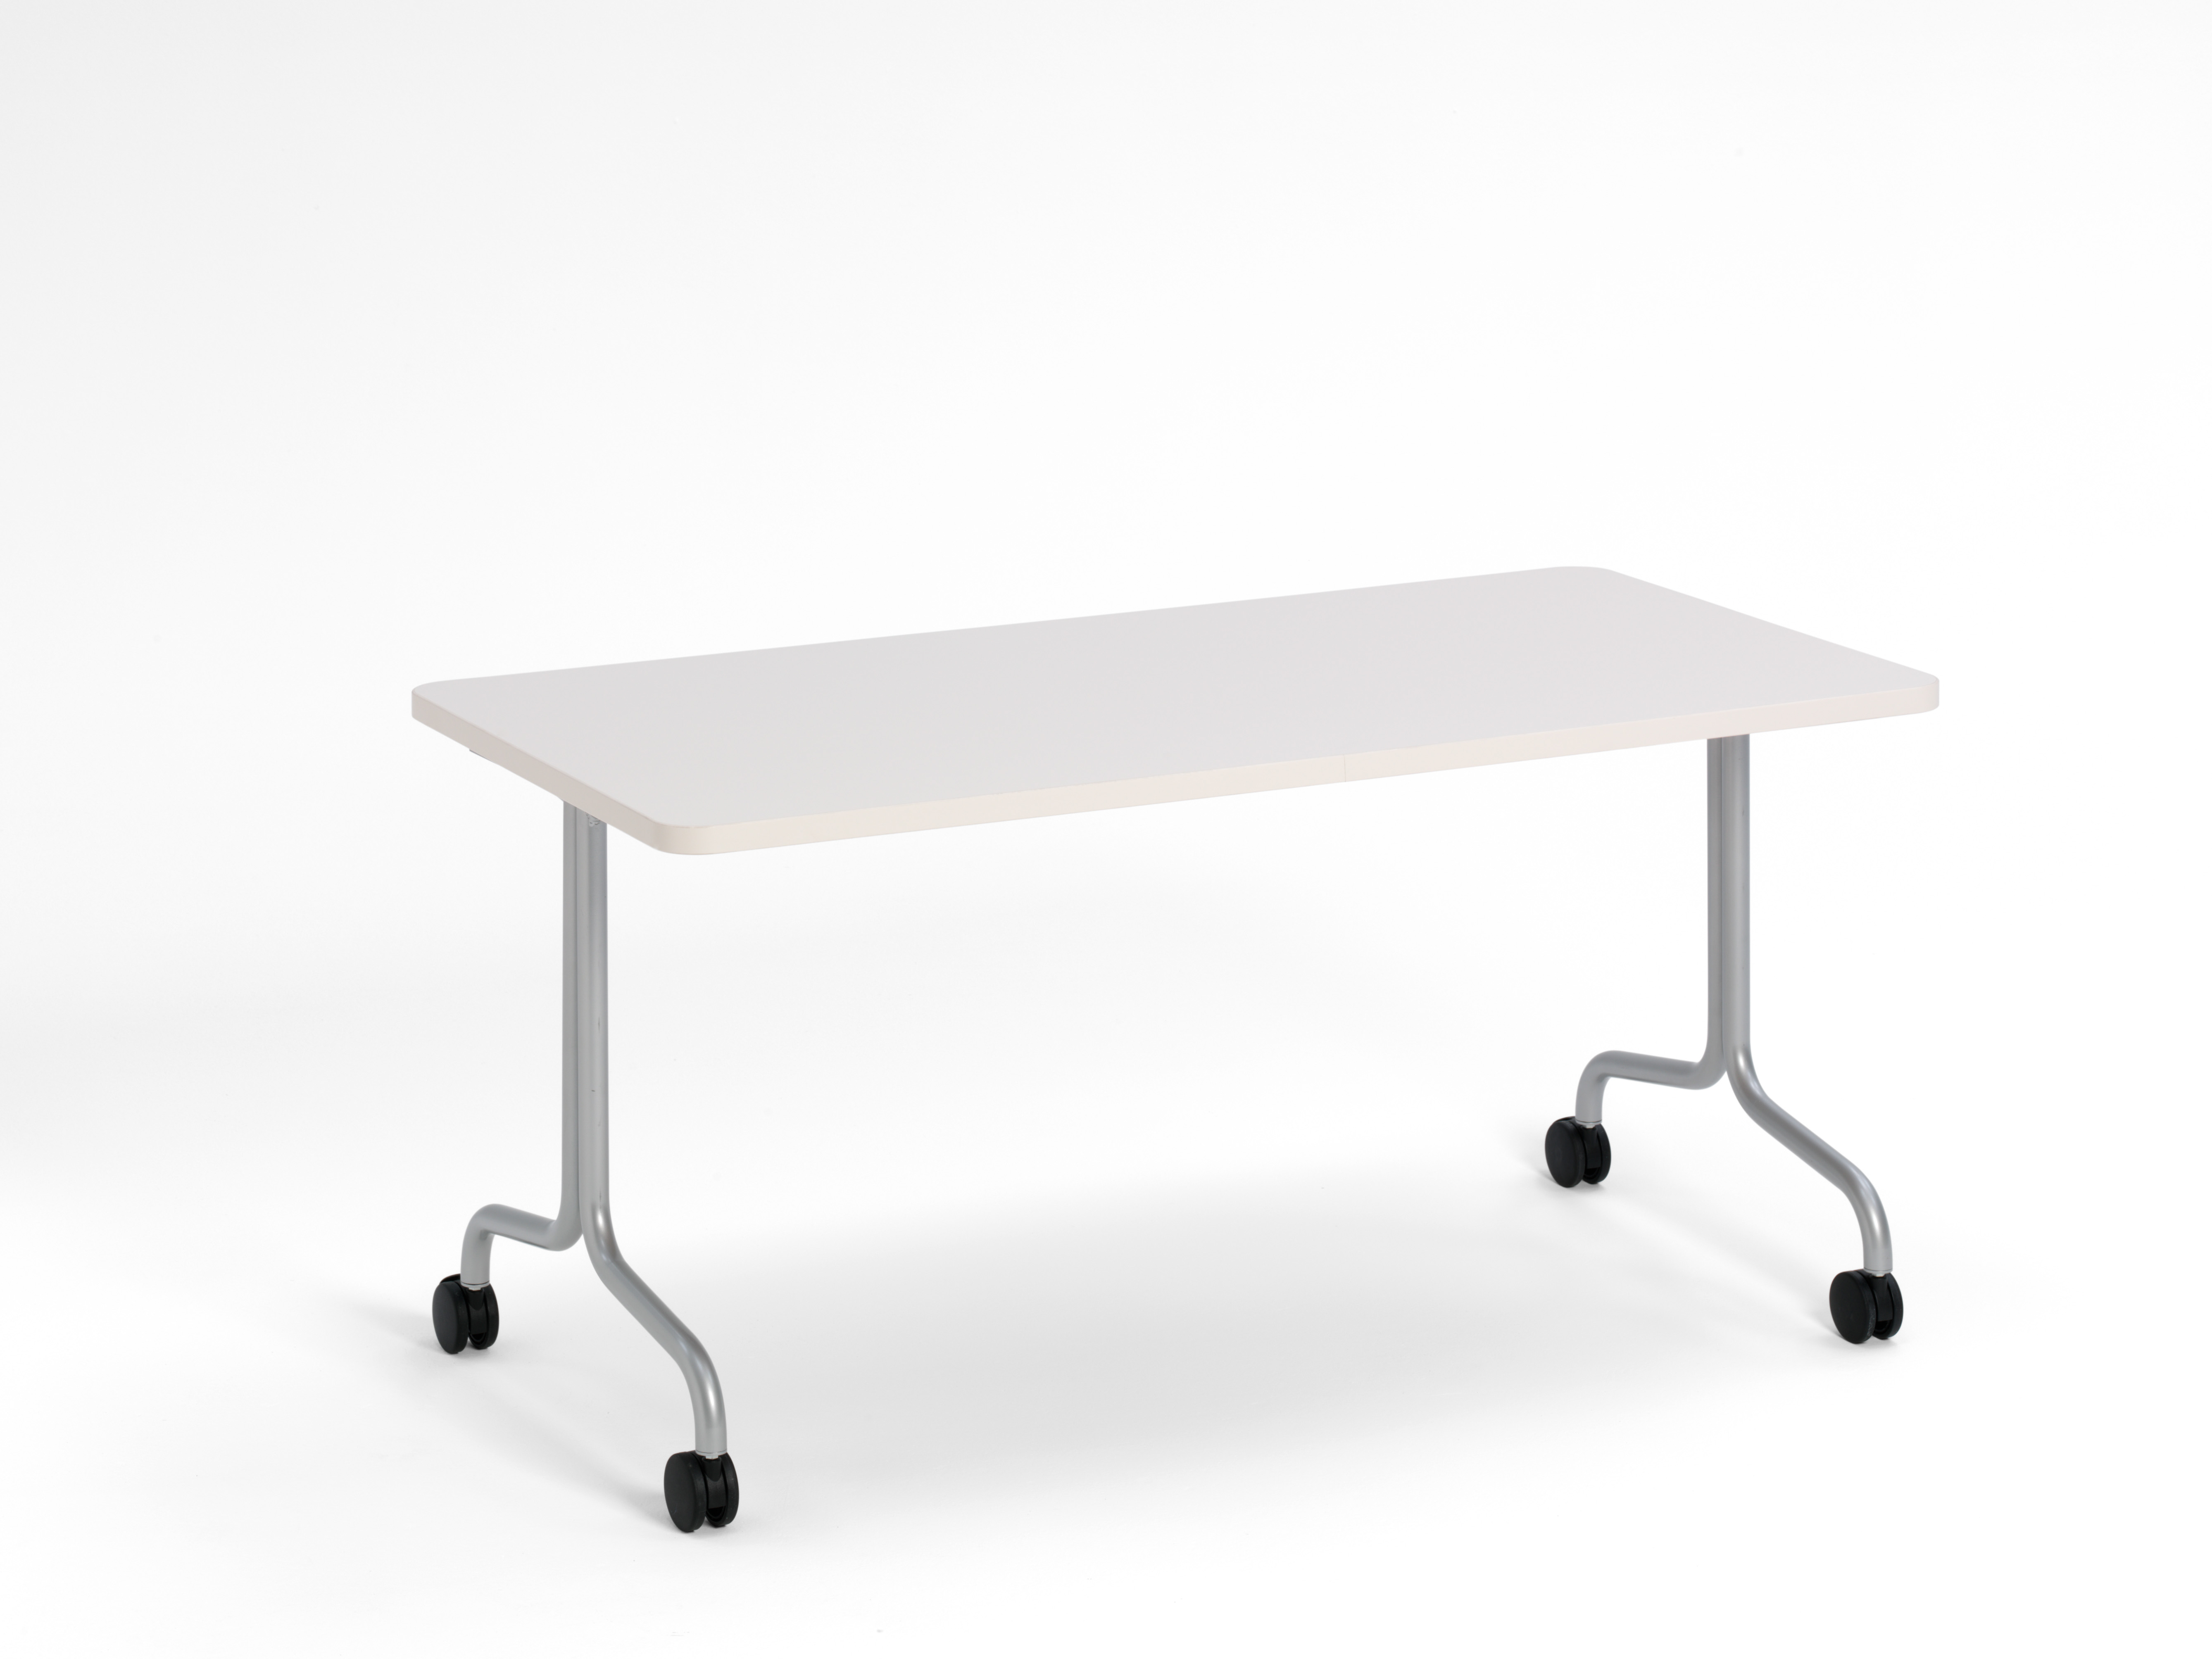 Groupwork rectangle table on casters